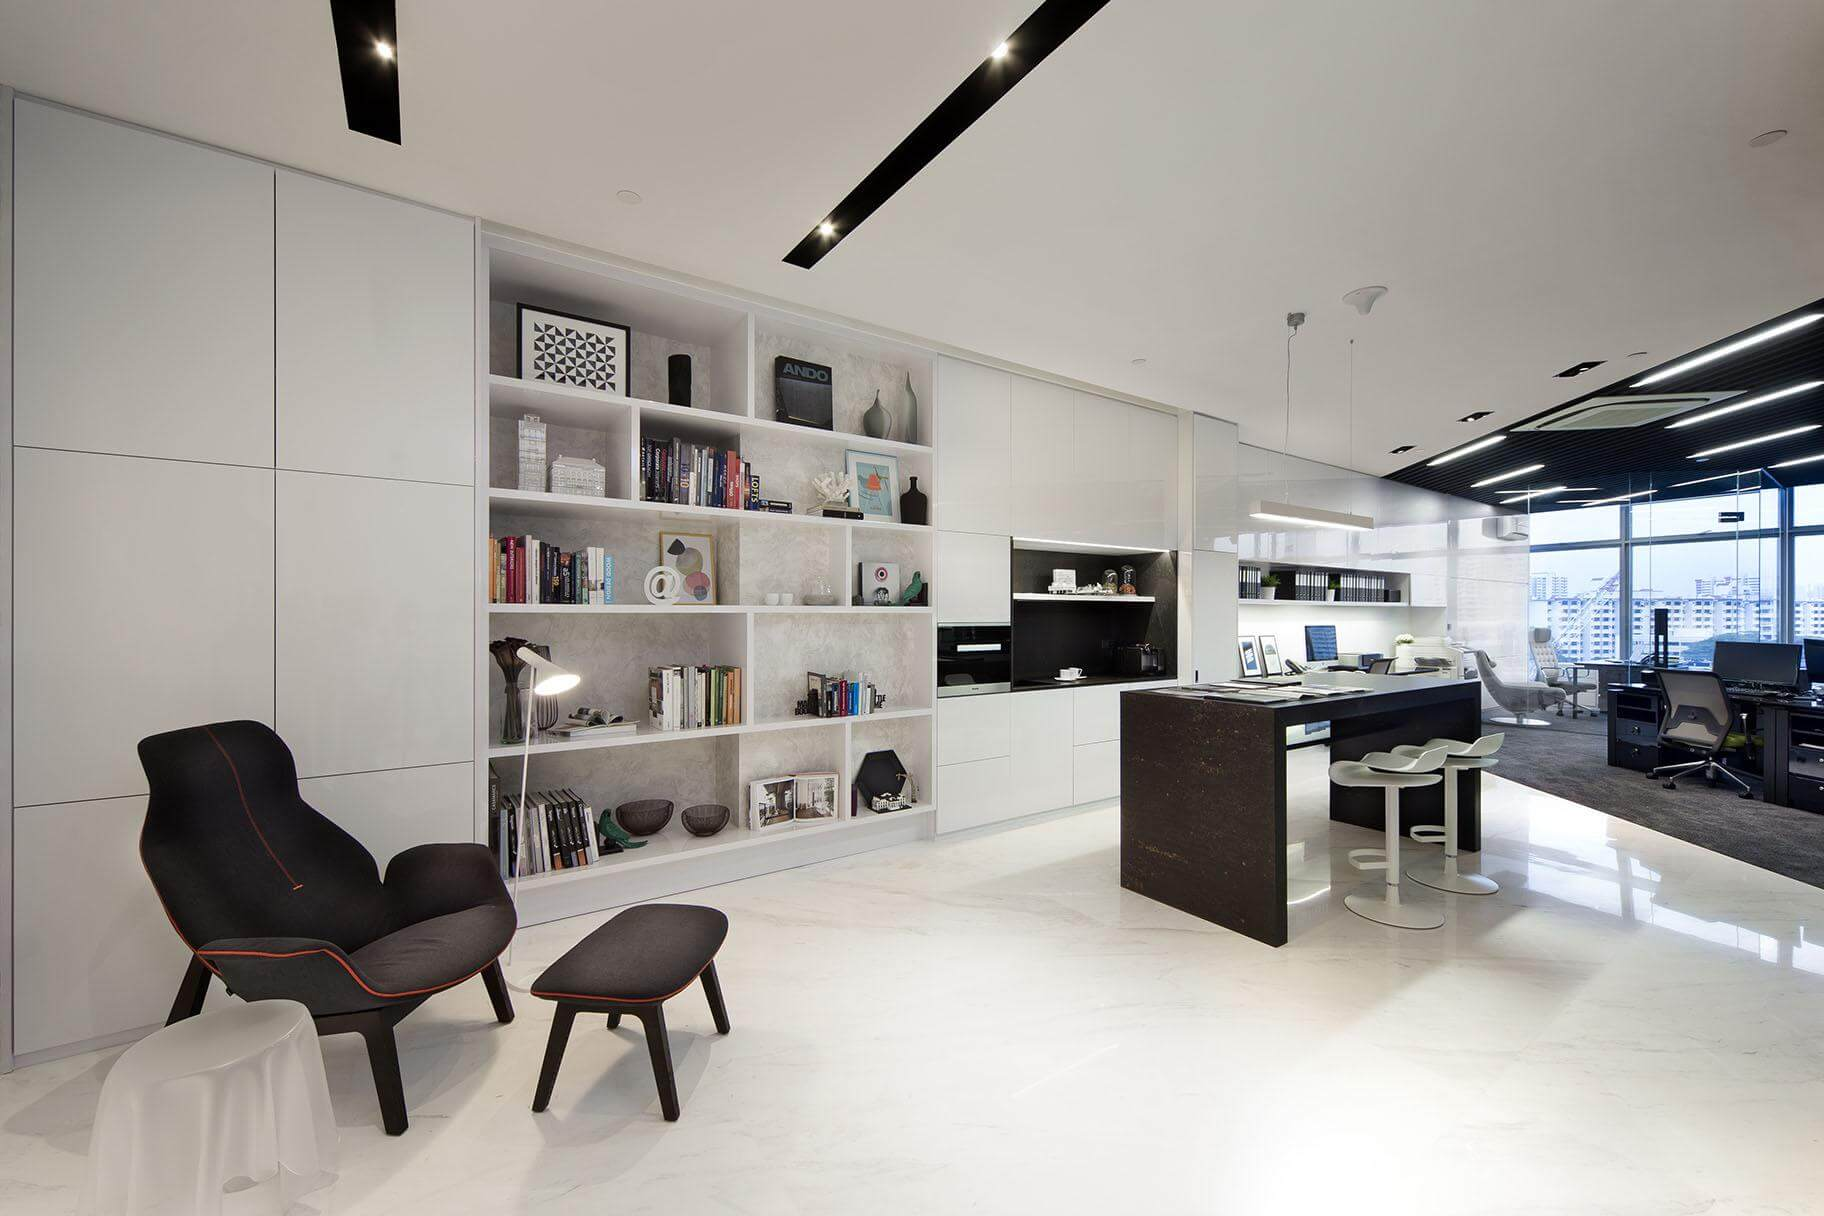 Best interior design company in singapore top interior for Commercial interior design companies